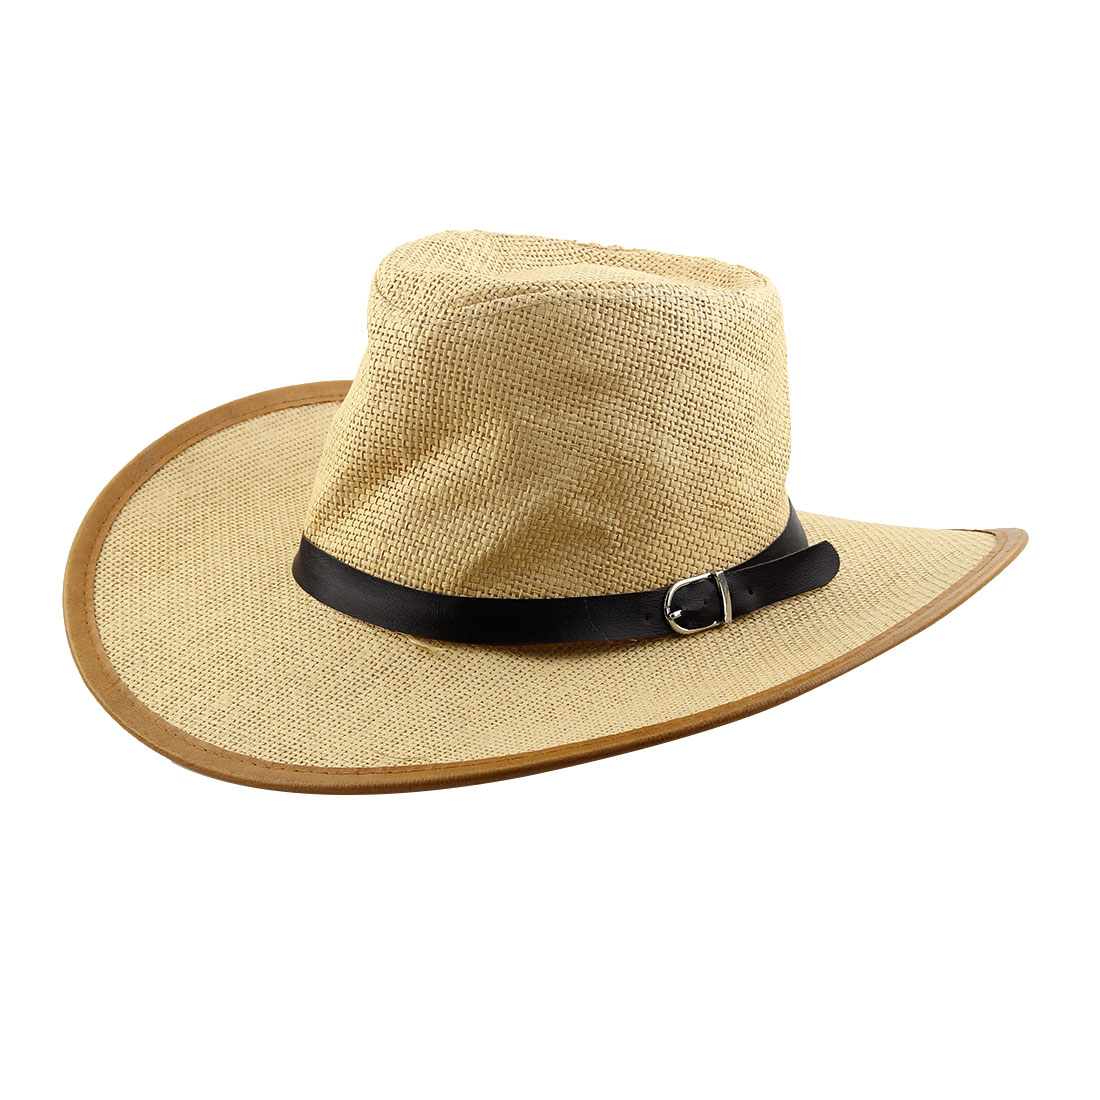 Summer Straw Braided Faux Leather Band Decor Sunhat Cowboy Hat Light Beige